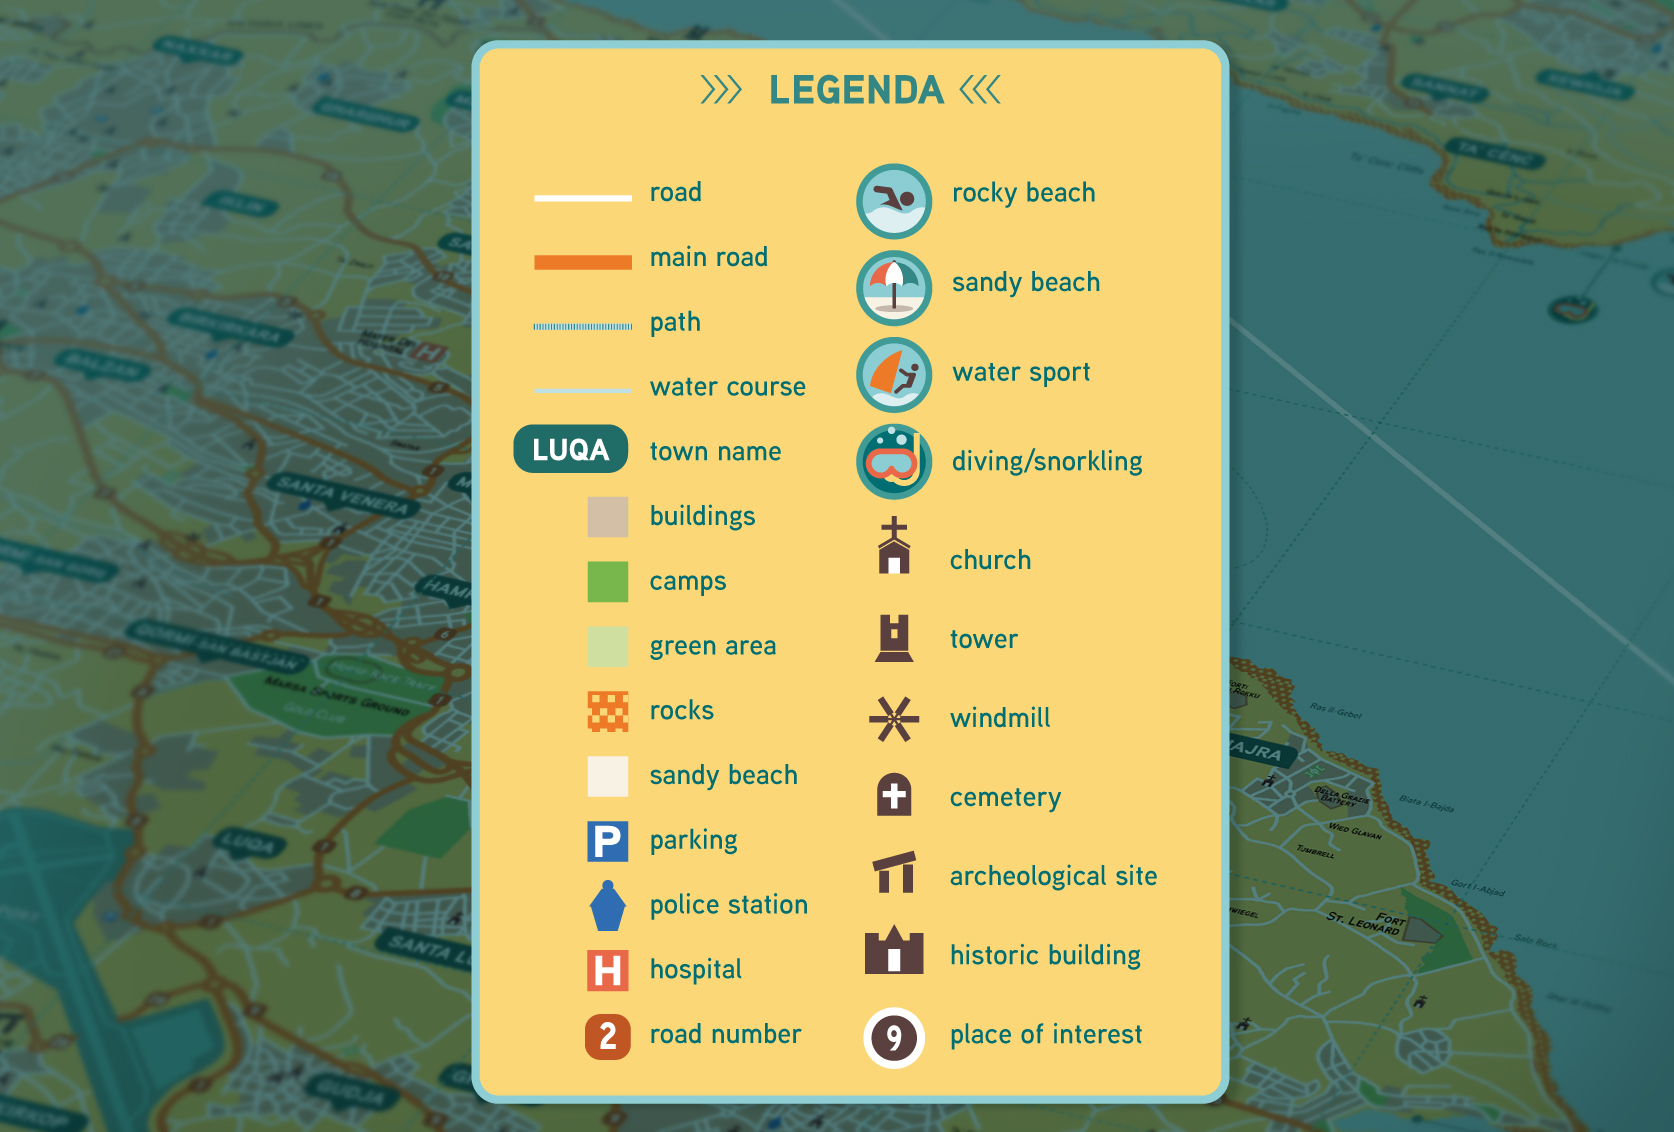 MALTA illustrated infographic road map